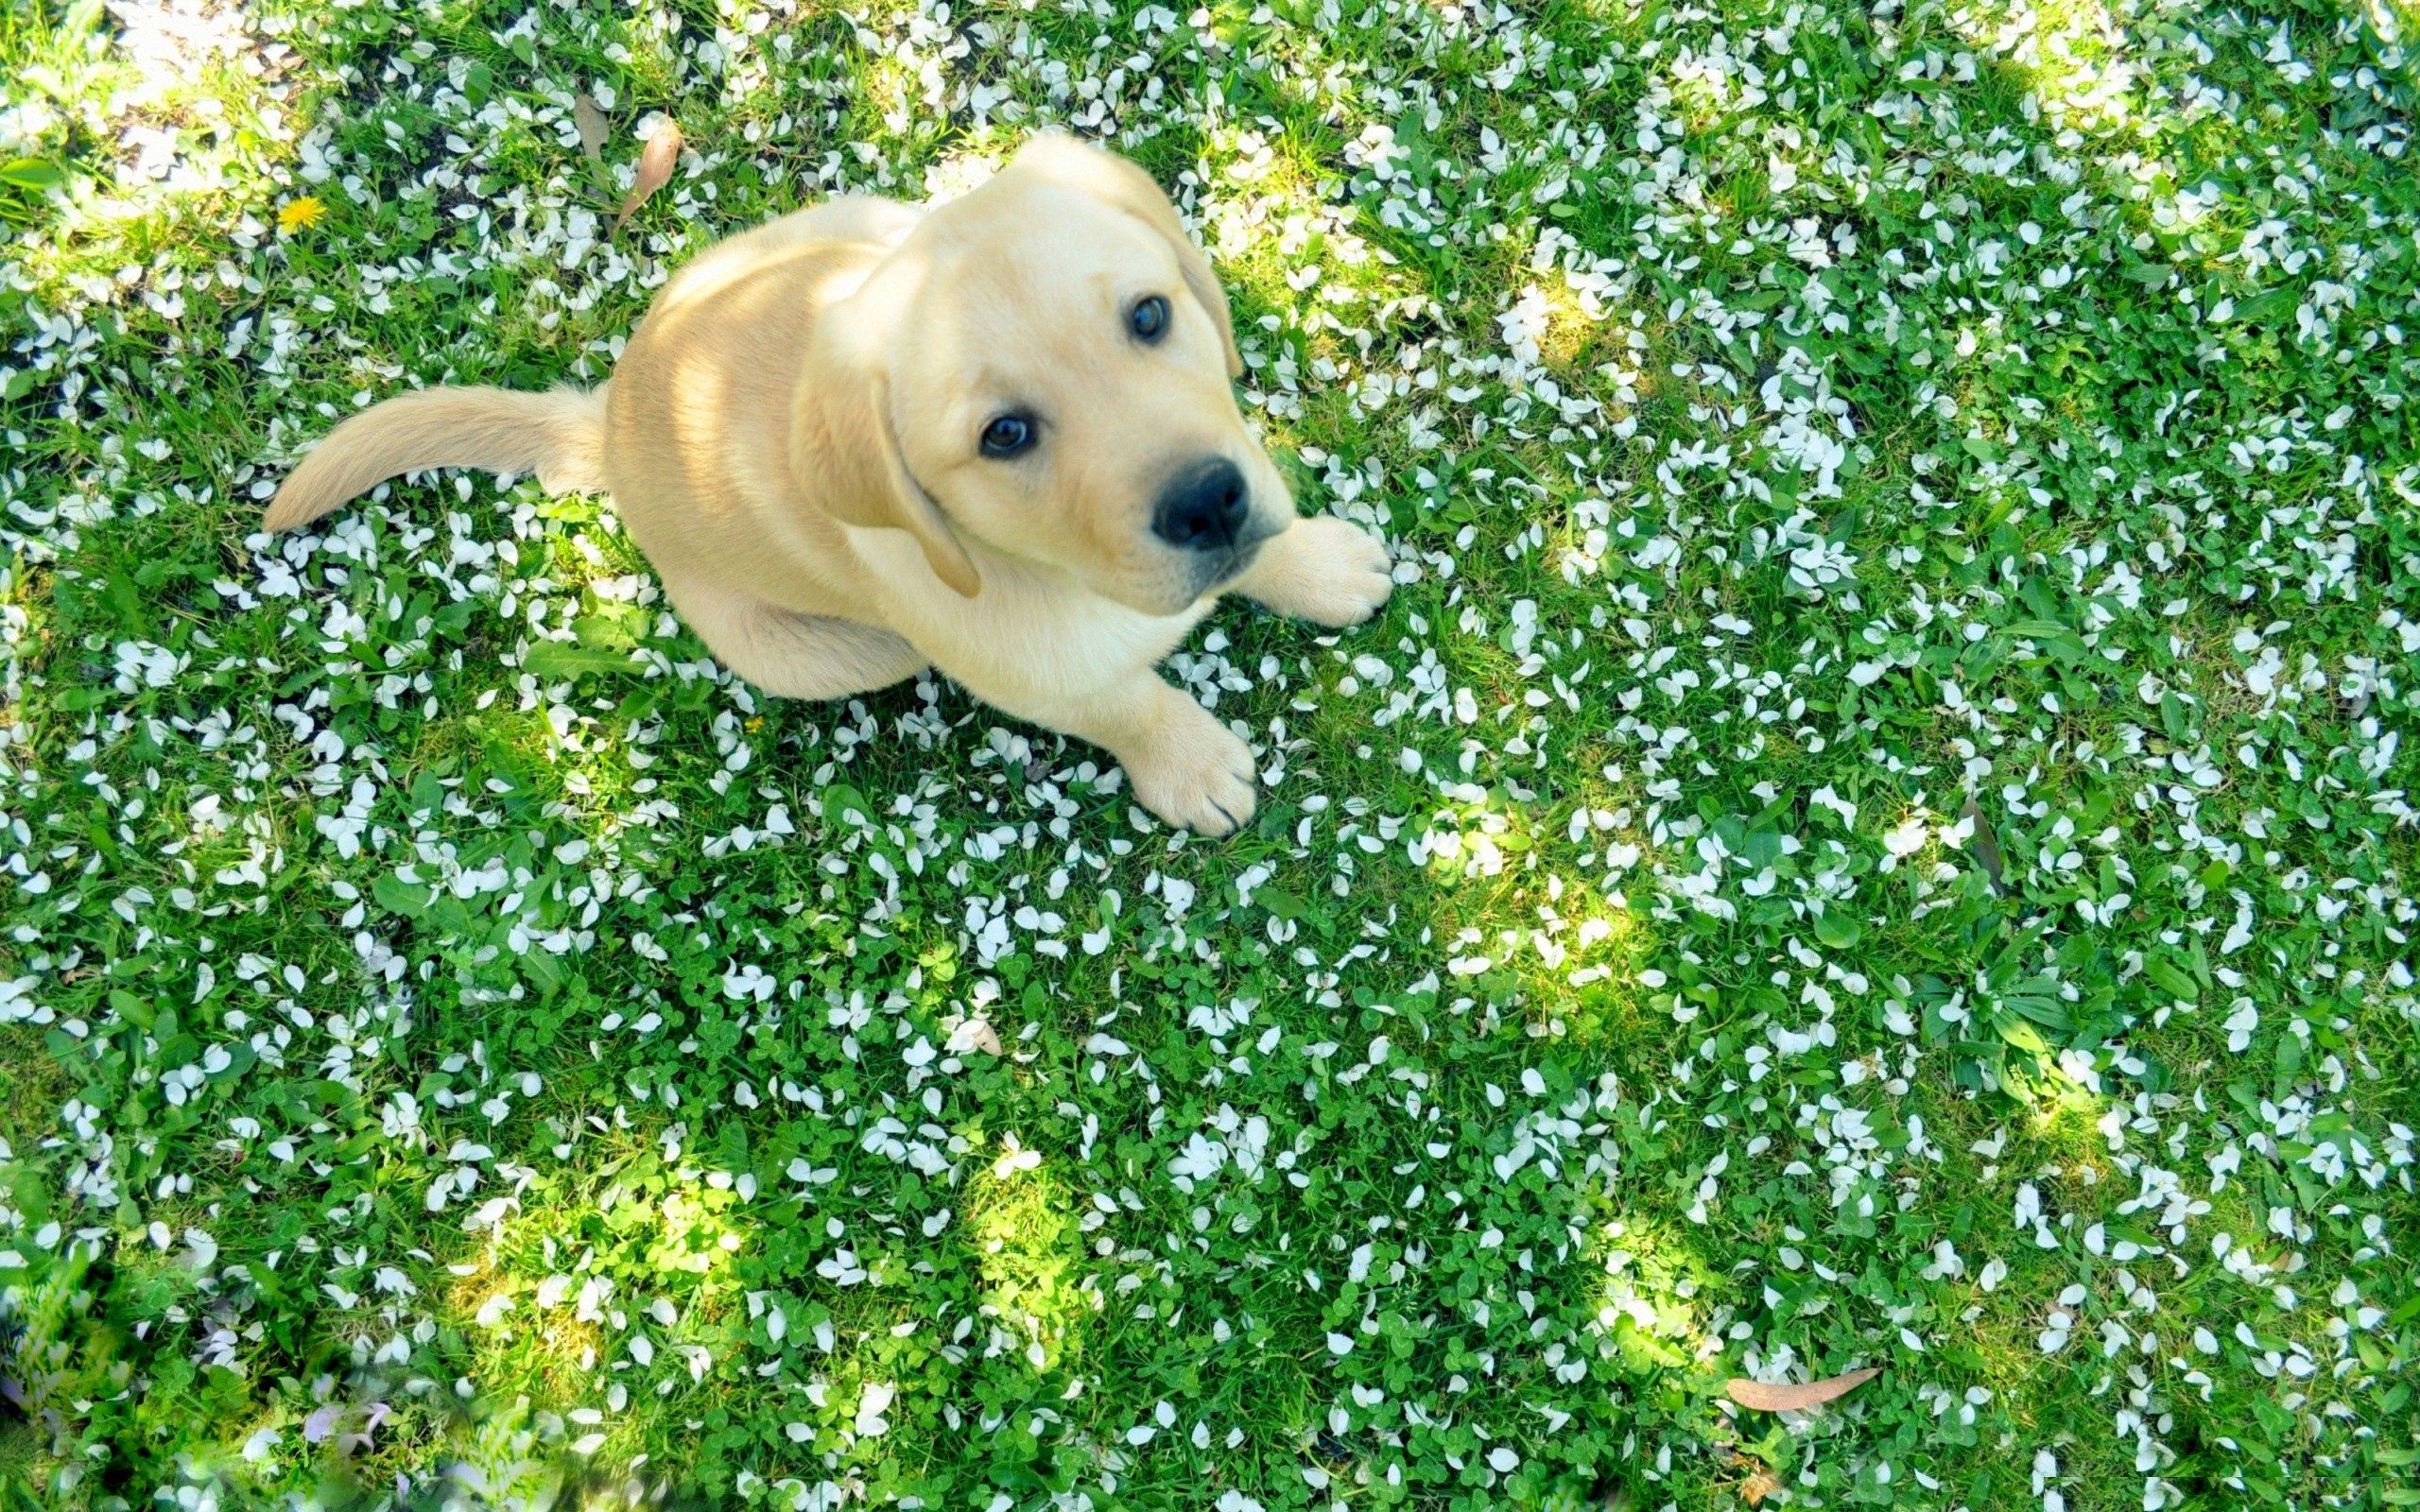 103364 download wallpaper Animals, Dog, Puppy, Labrador, Grass, Sit screensavers and pictures for free